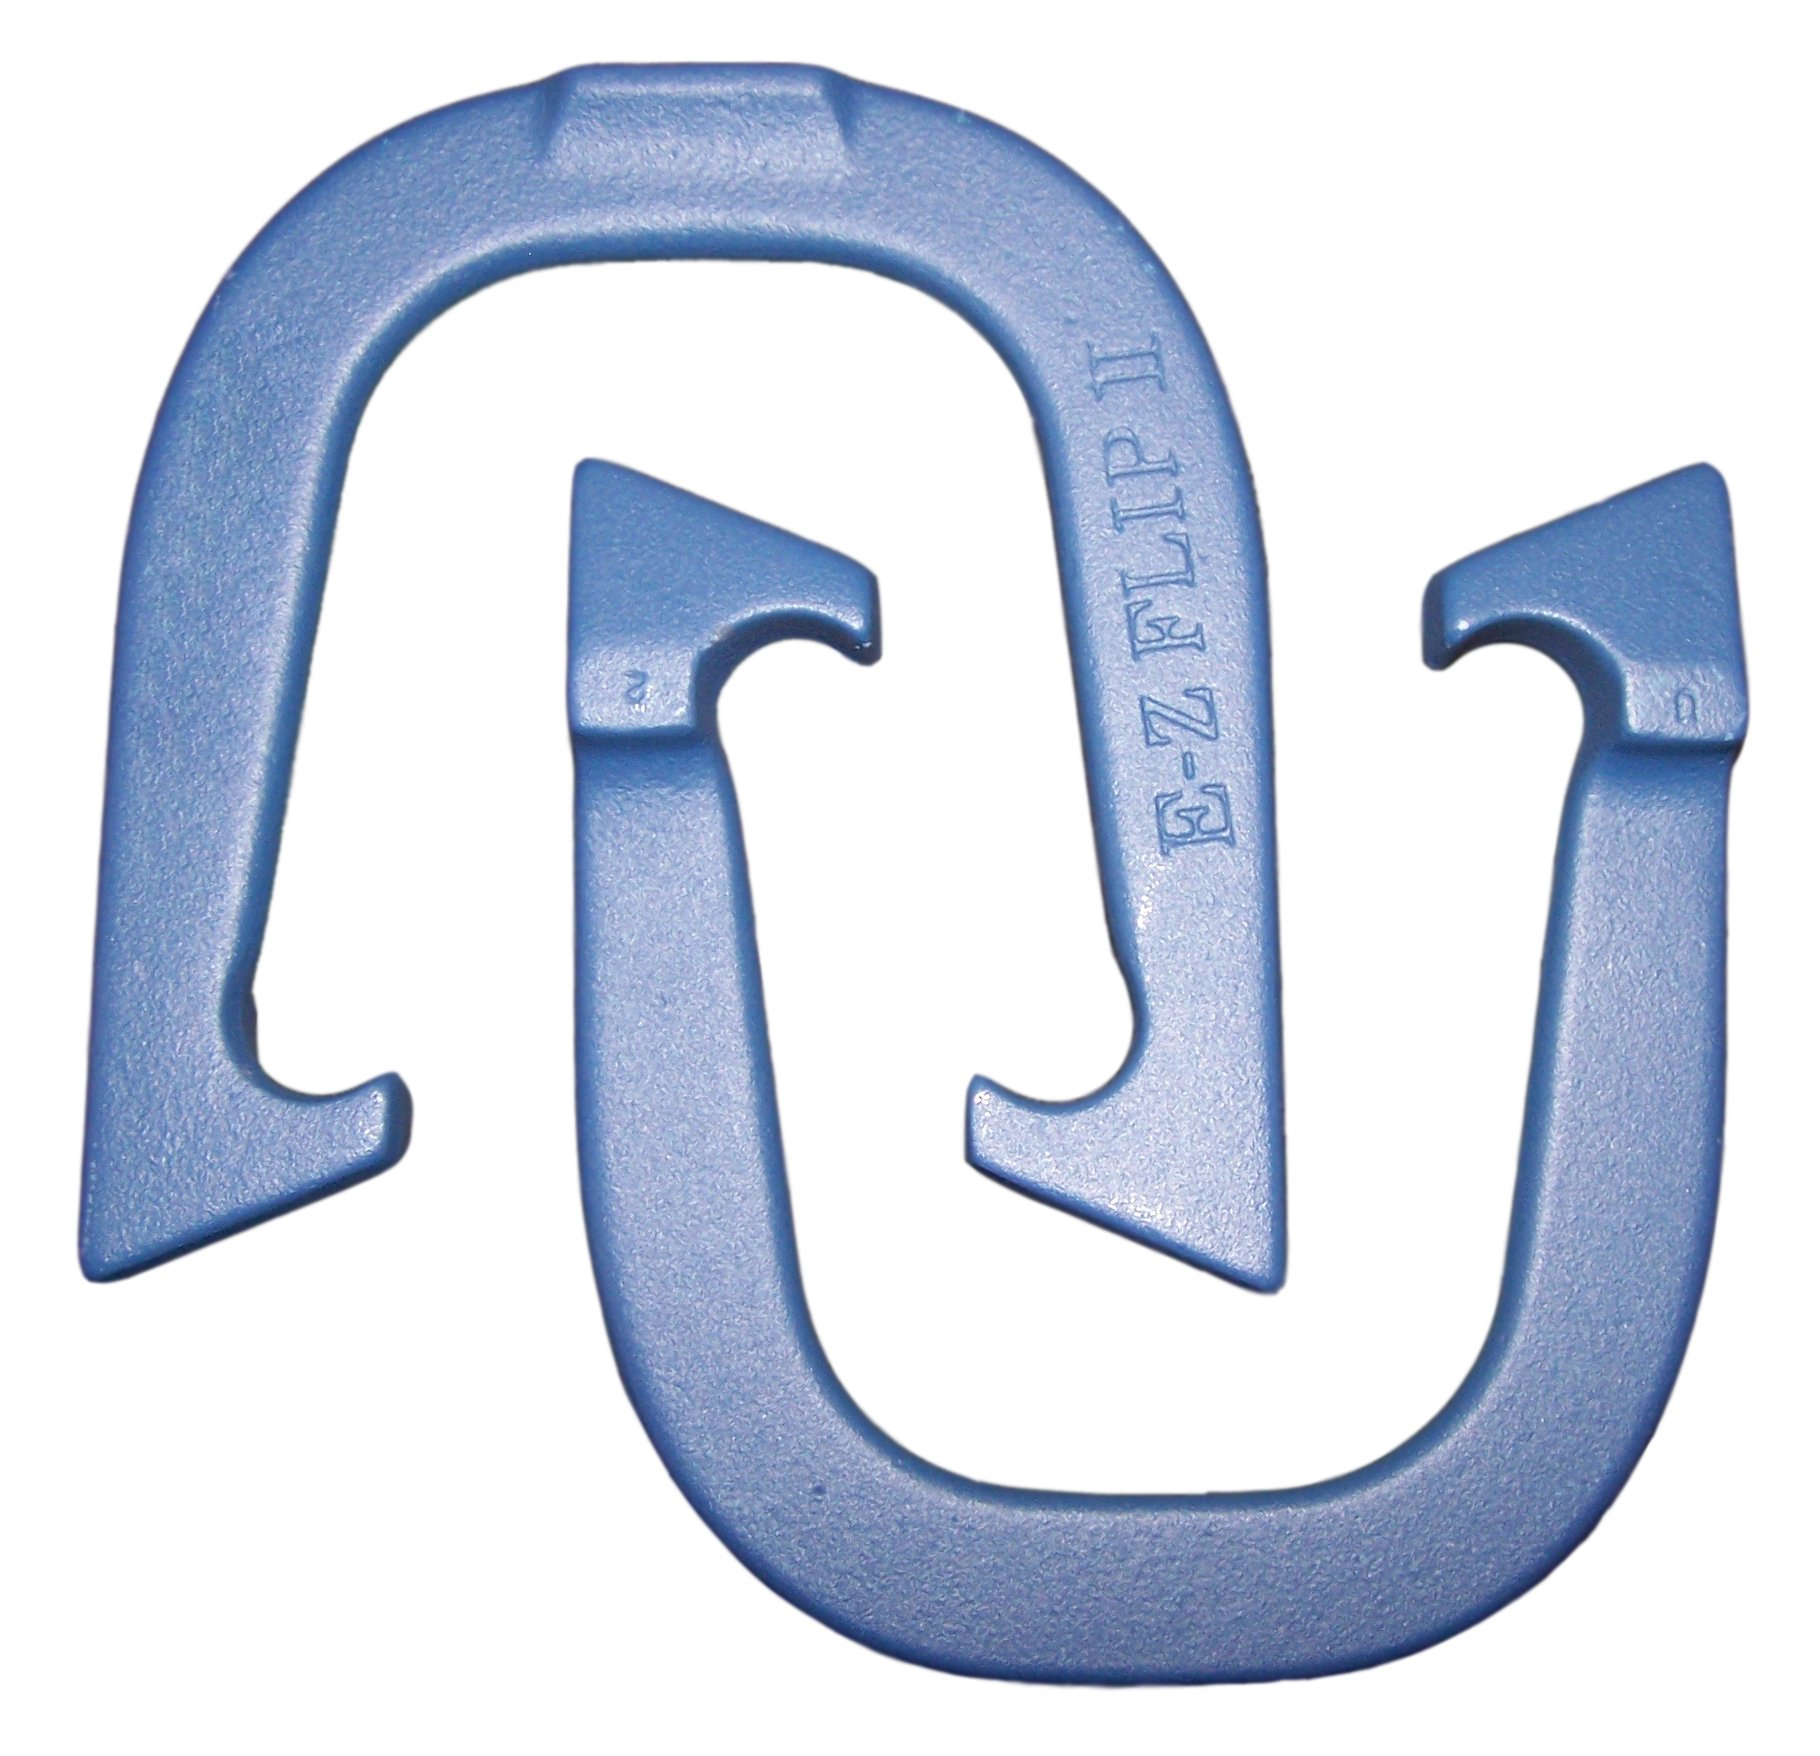 E- Z Flip II Professional Pitching Horseshoes- Made in the USA! (Blue- Single Pair (2 shoes))